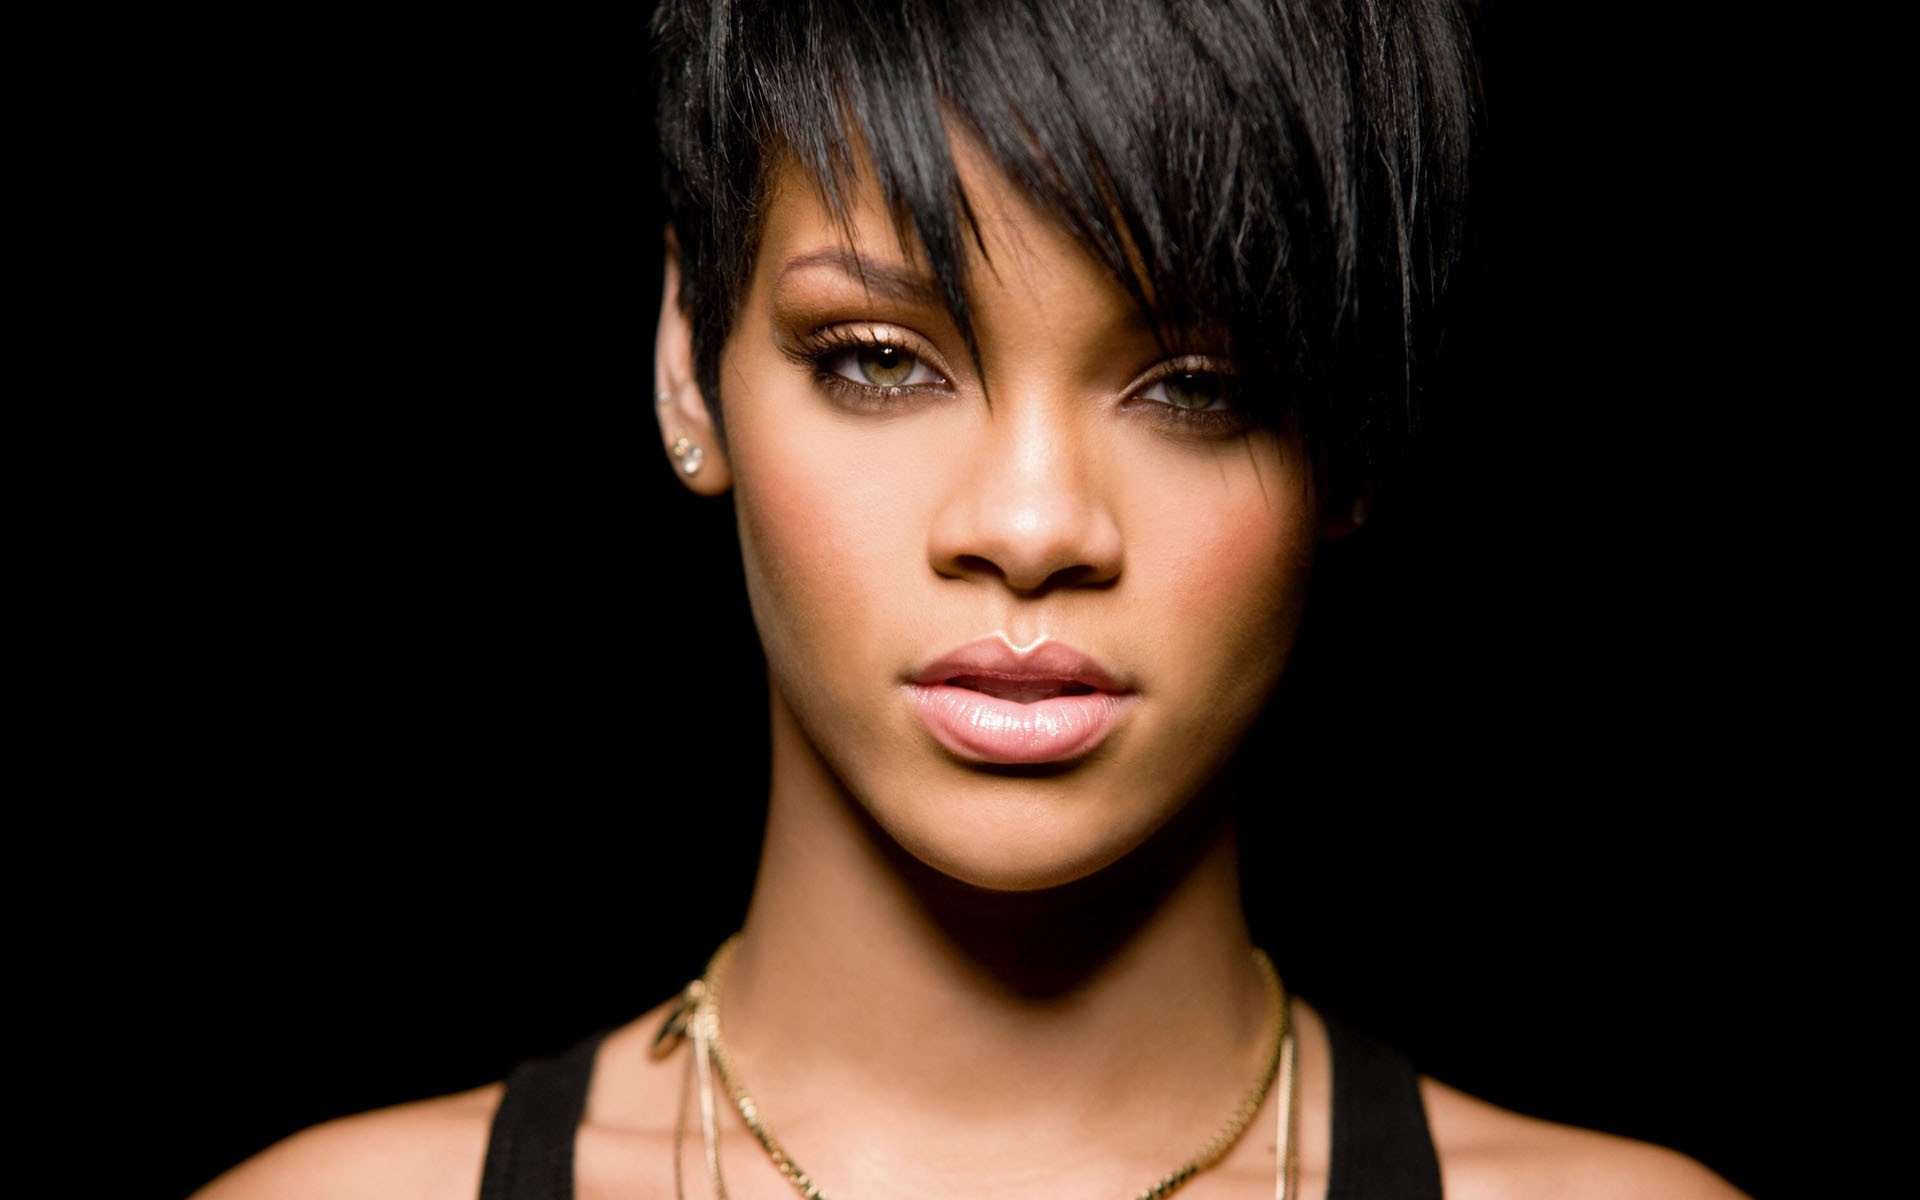 Rihanna Short Hair 434.66 Kb